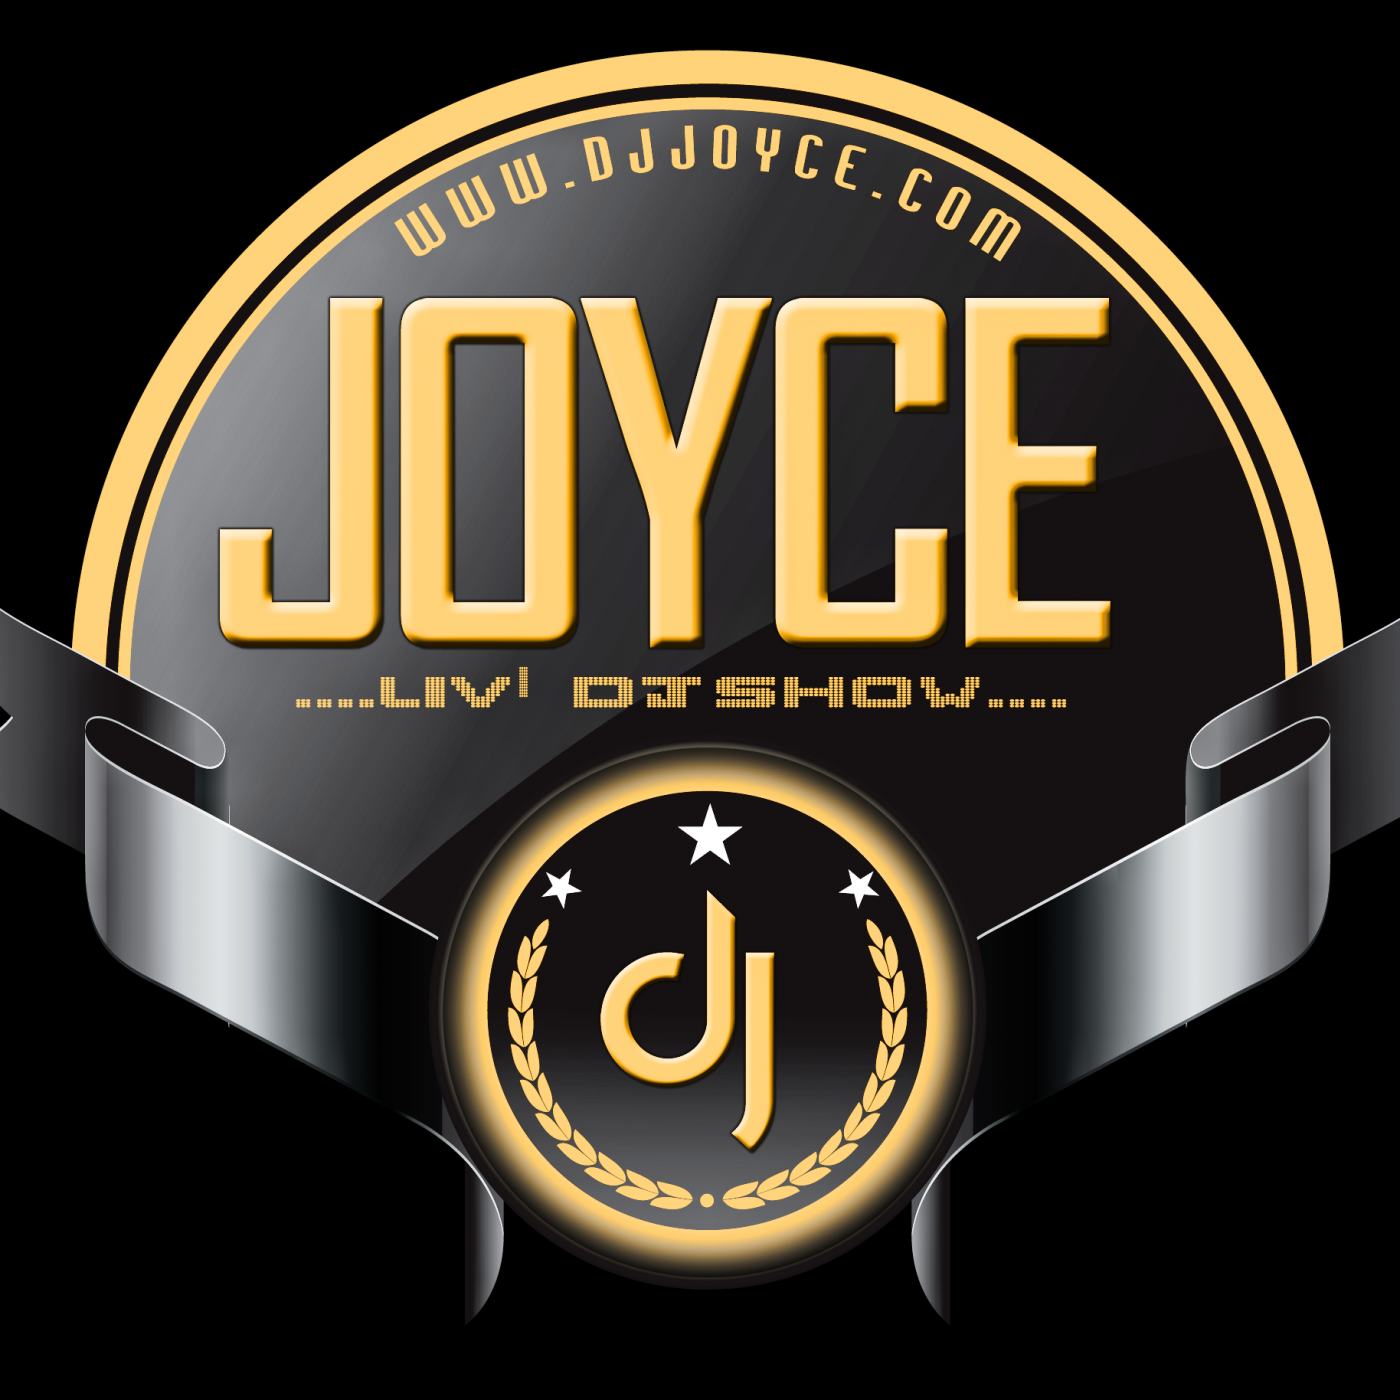 DJ JOYCE INTERNATIONAL DJ FROM THE FWI / FRENCH RIVIERA & NRJ RADIO